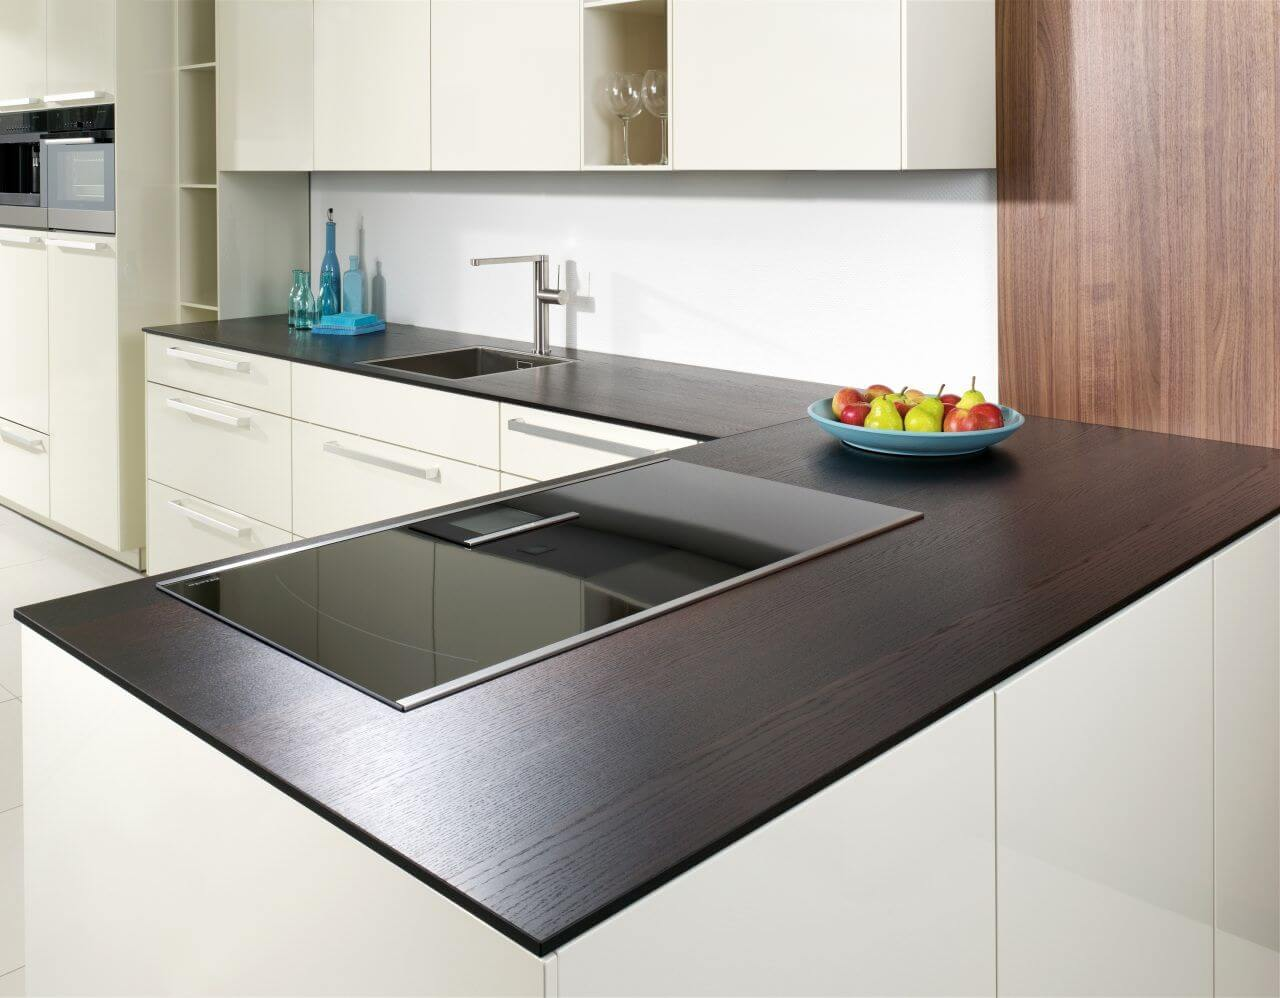 Black wooden top and white facades of the furniture for modern designed kitchen